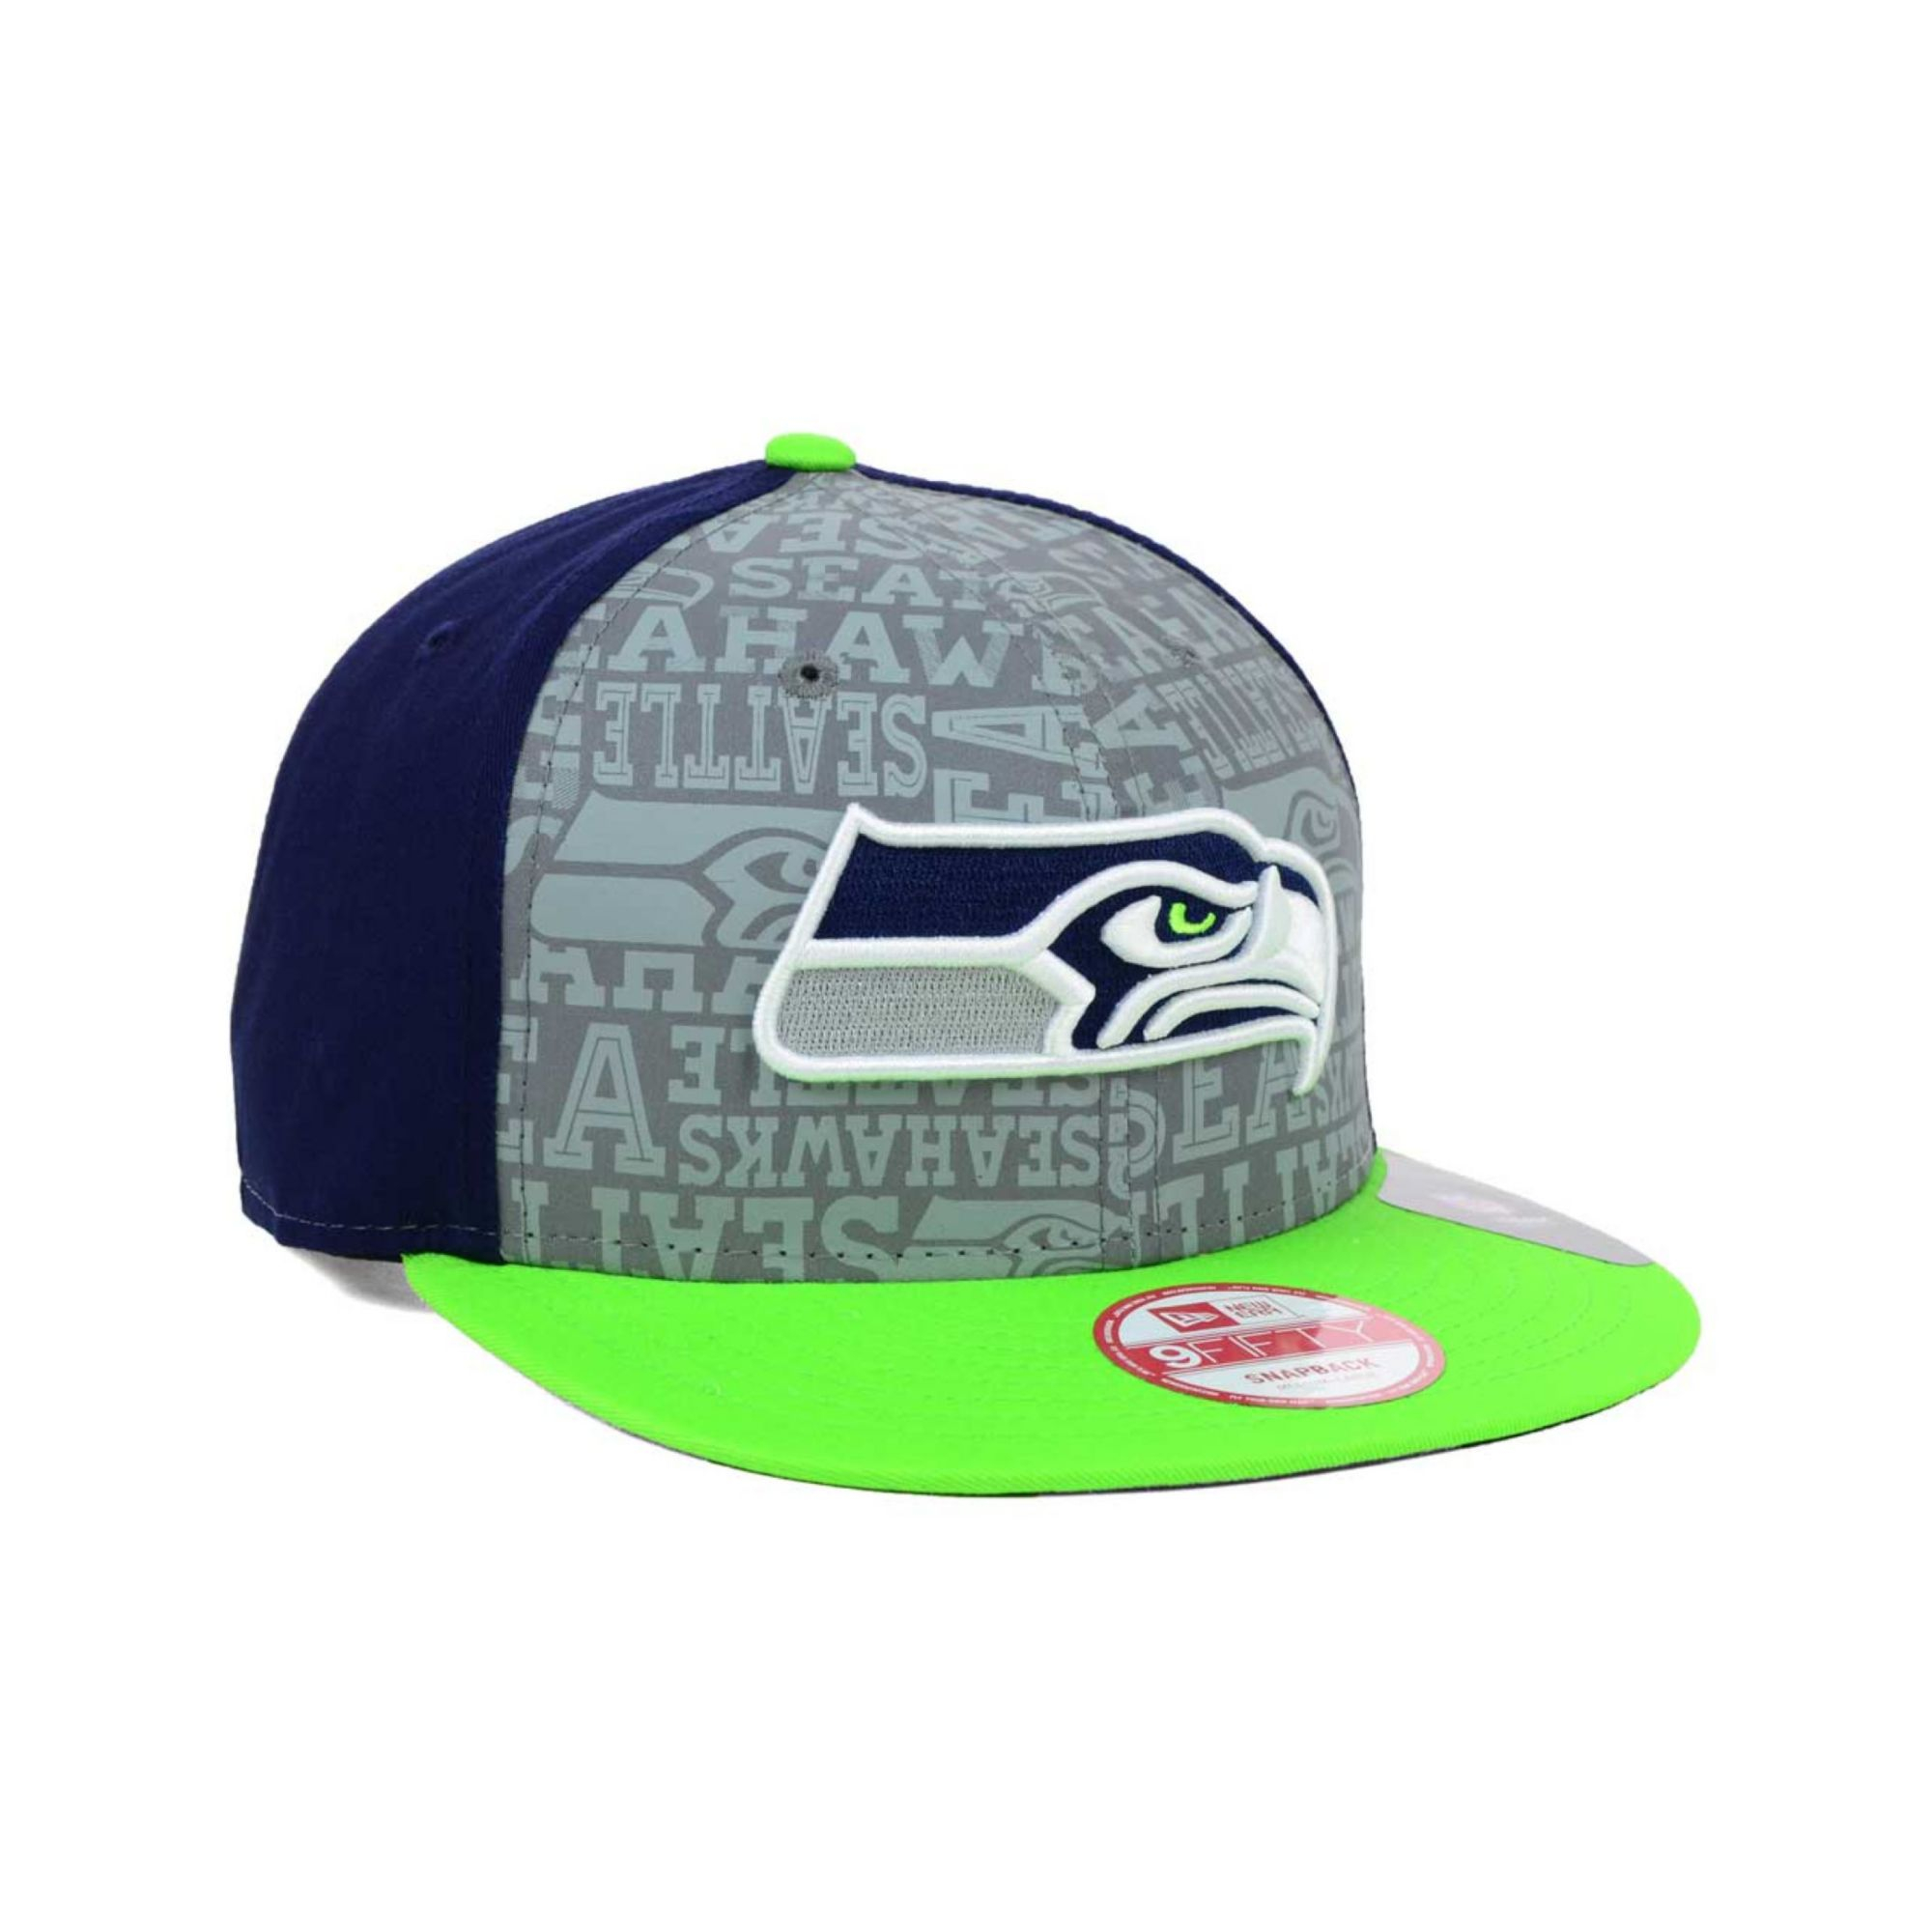 reduced lyst ktz seattle seahawks nfl draft 9fifty snapback cap in green  20961 b83d0 ac6f9013ce1b